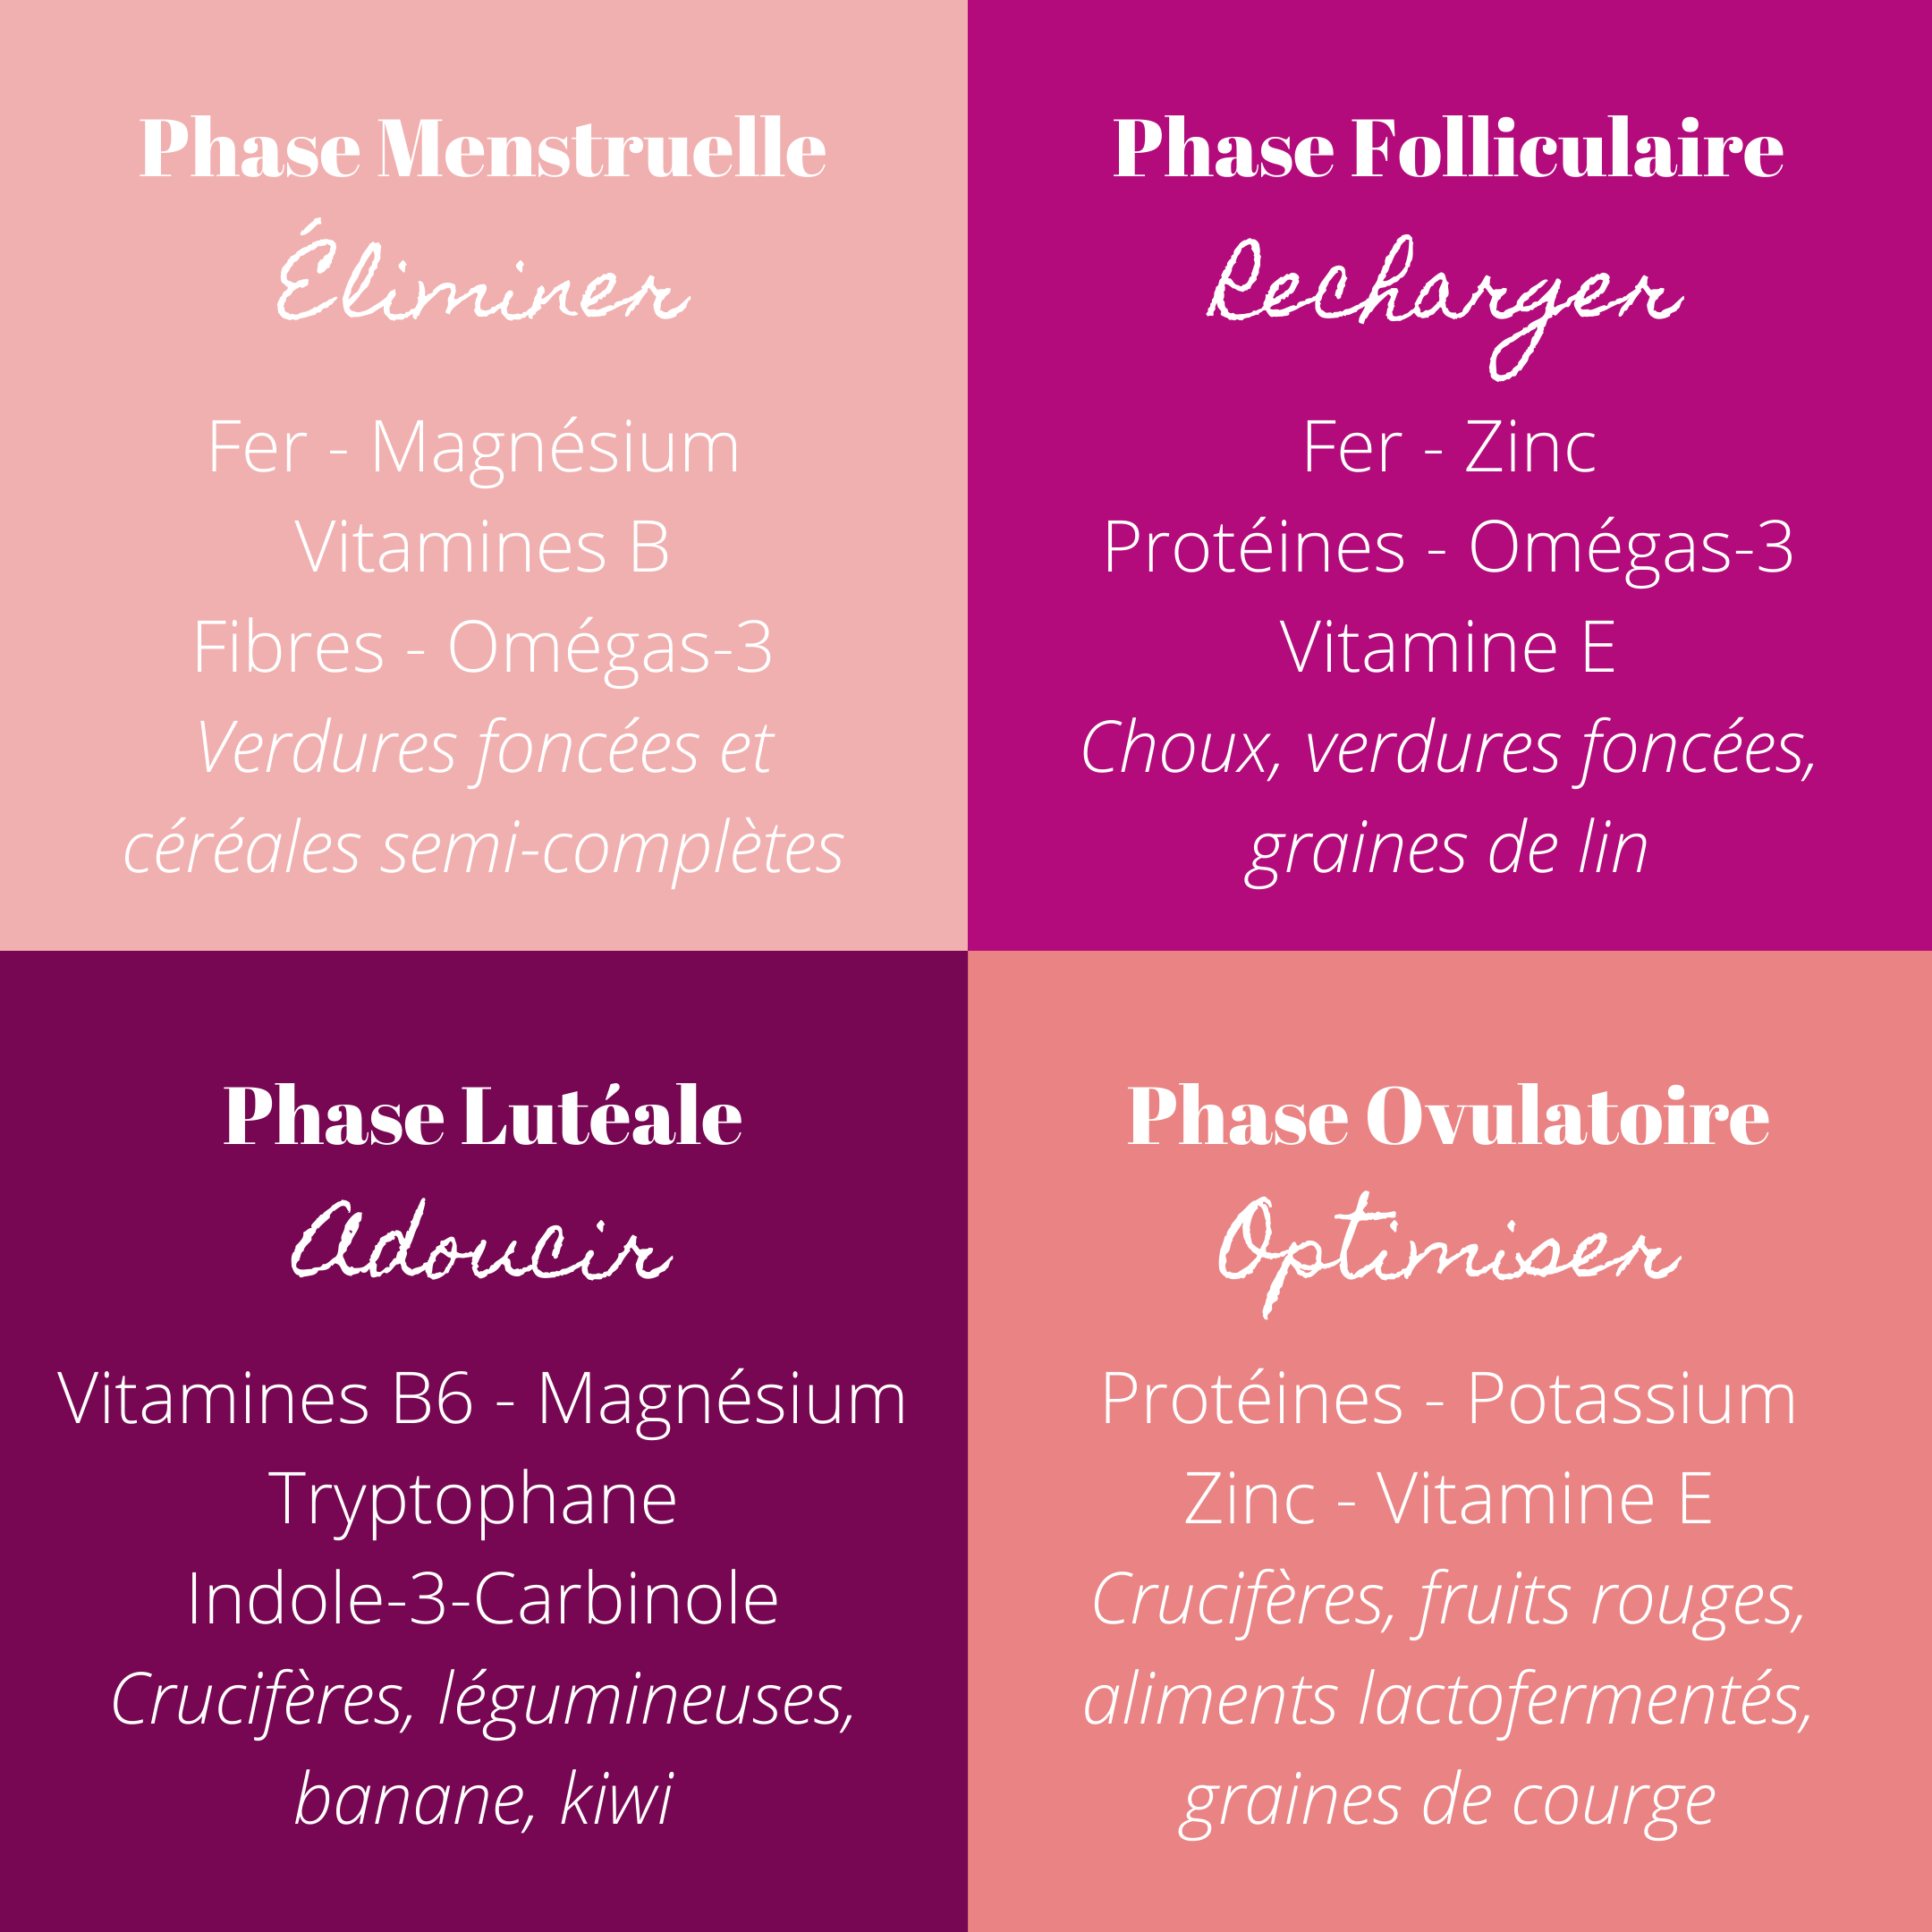 Alimentation et cycle menstruel, phase par phase